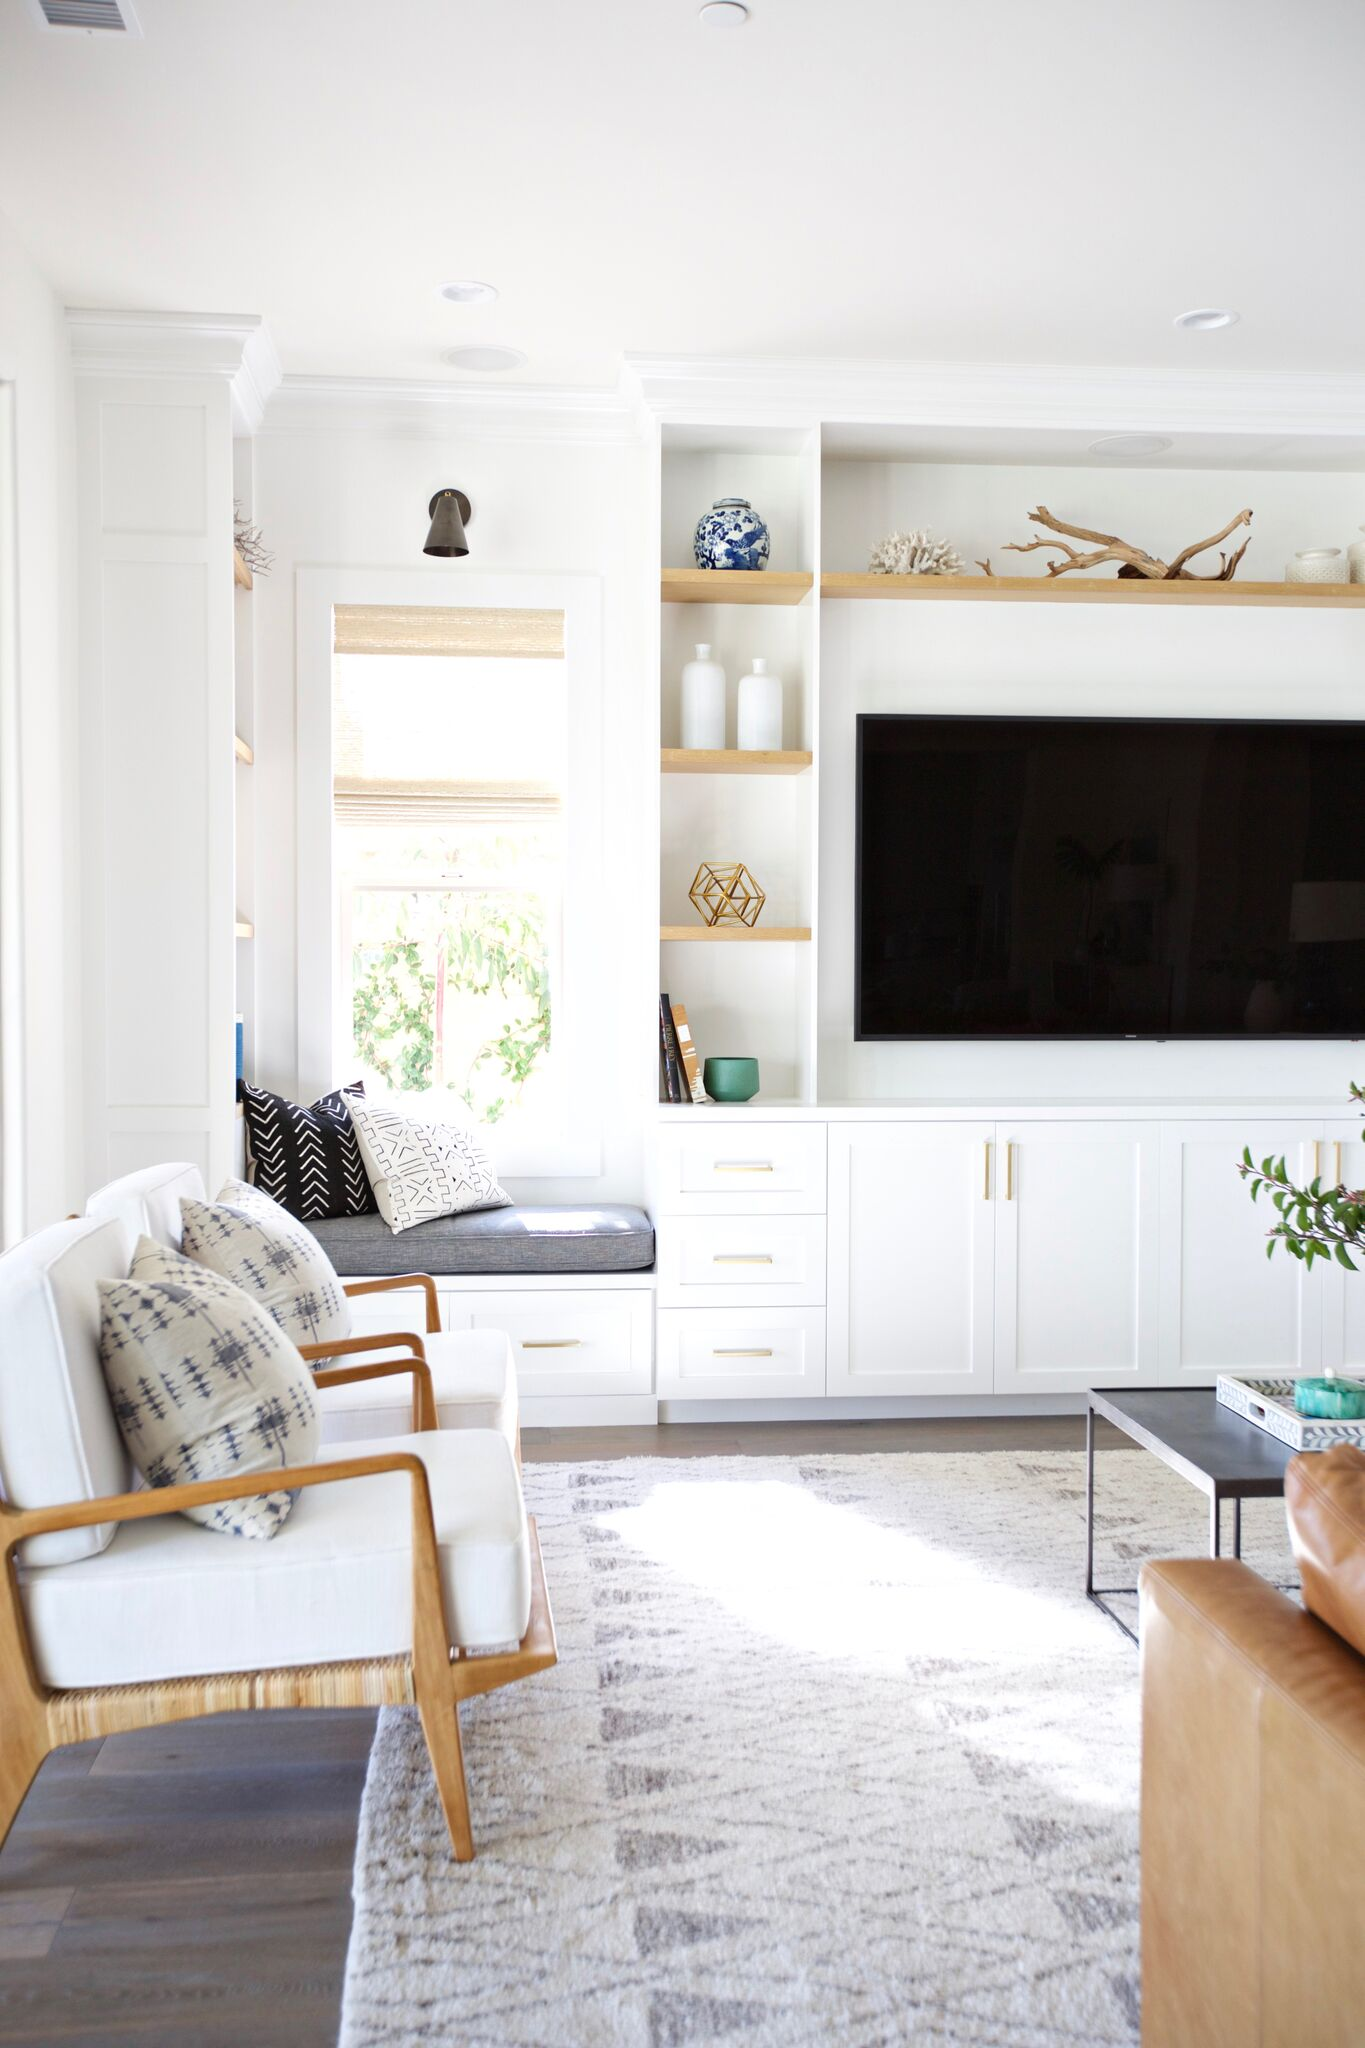 Built-In Cabinets: Make The Most of Them!